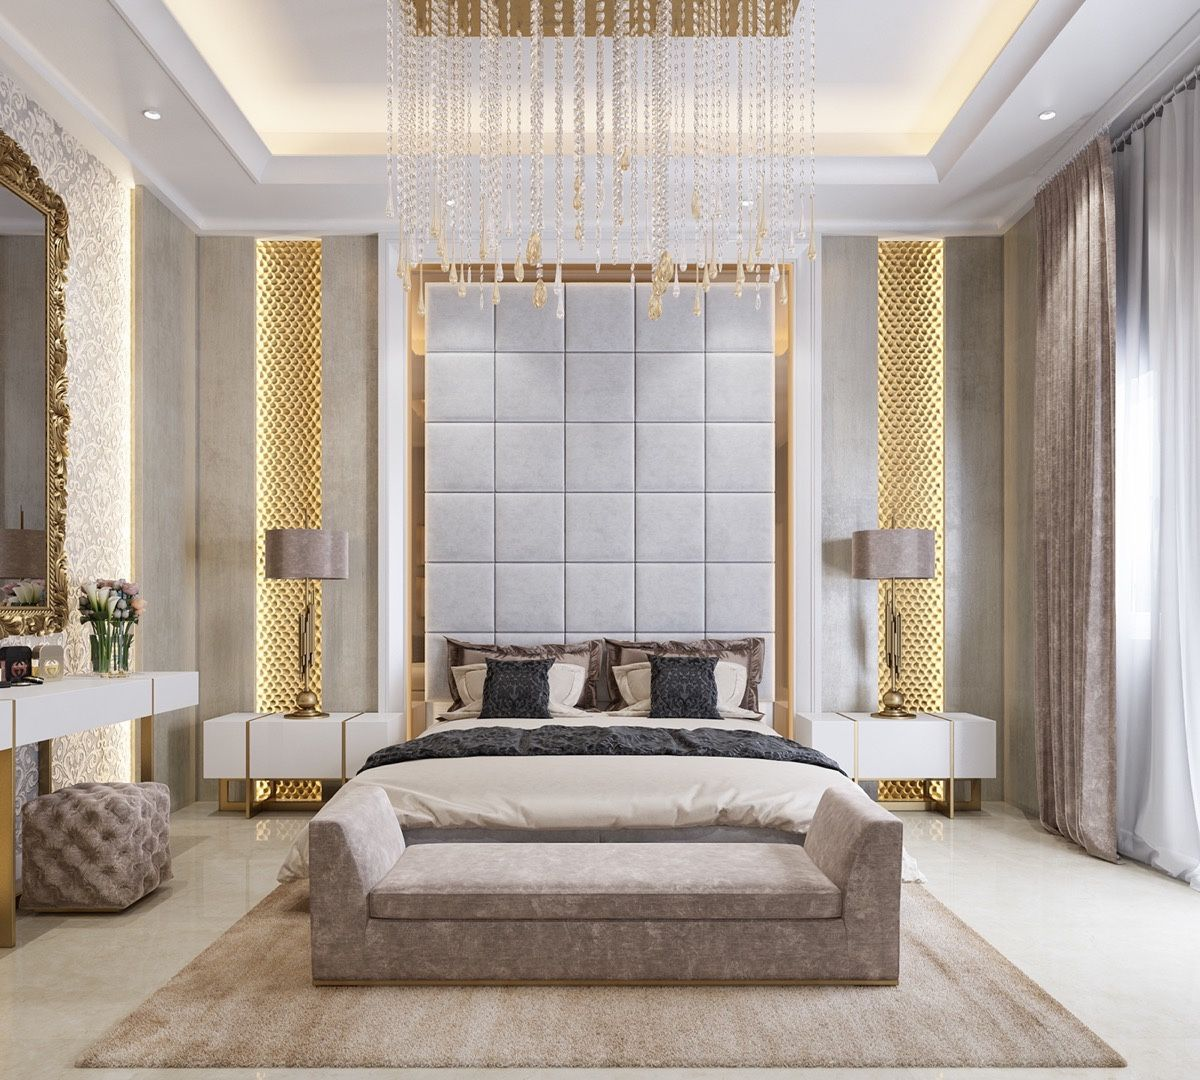 3 Kind Of Elegant Bedroom Design Ideas Includes A Brilliant Decor Interesting Elegant Bedrooms Designs Decorating Design